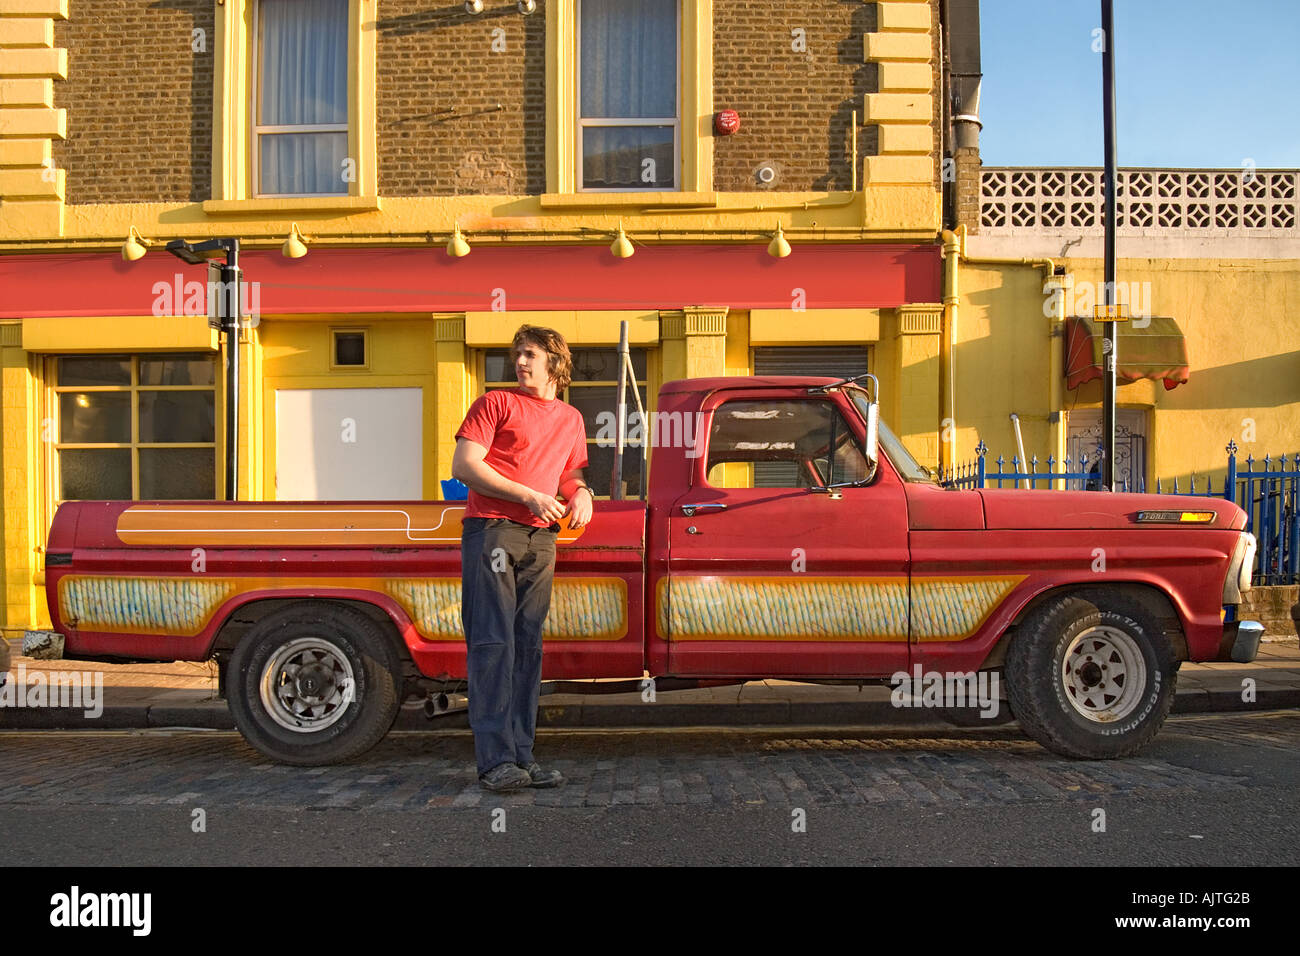 Ford F100 Pickup Truck Stock Photos 1954 Pick Man Standing By Red With A Bright And Yellow Building In